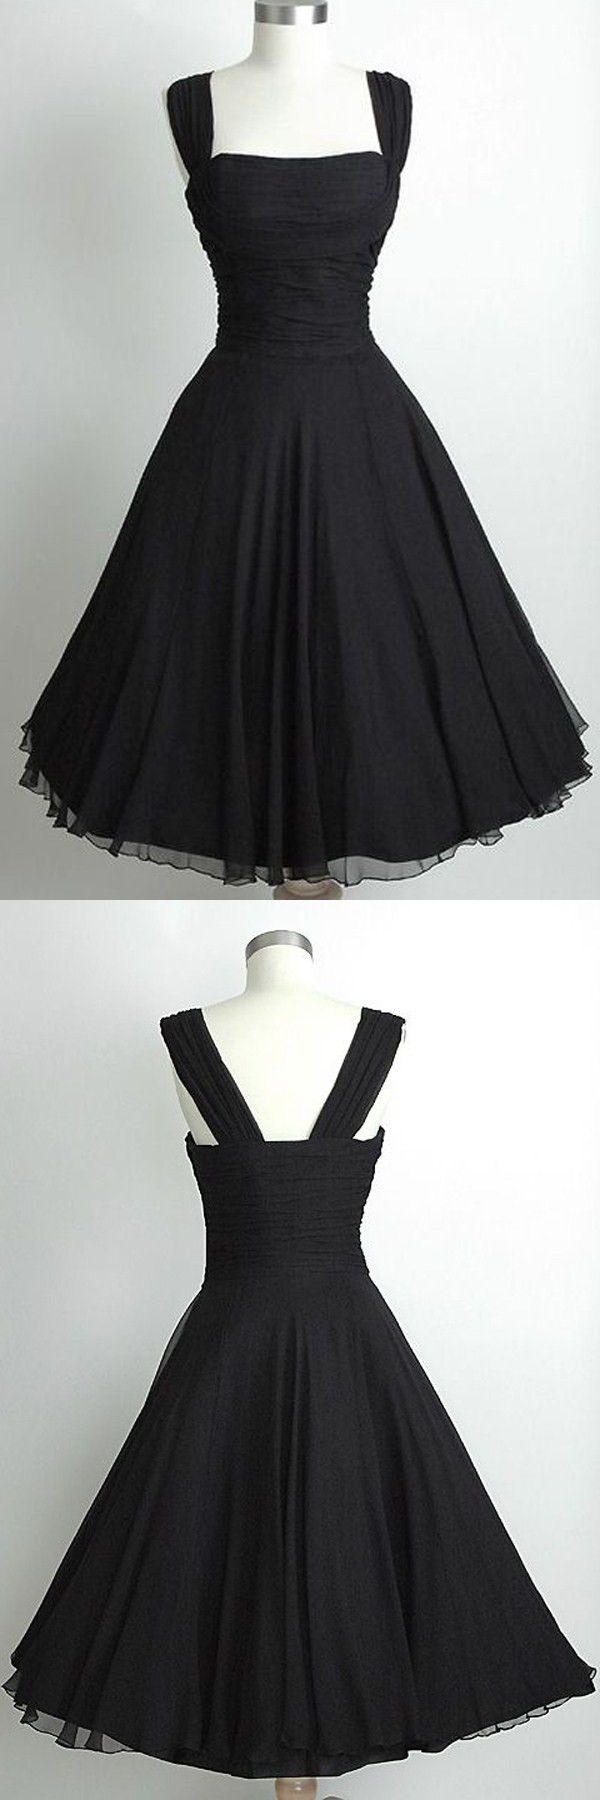 2016 homecoming dresses,vintage homecoming dresses,black homecoming dresses,short prom dresses,1950s homecoming dresses,chic homecoming dresses,knee-length homecoming dresses